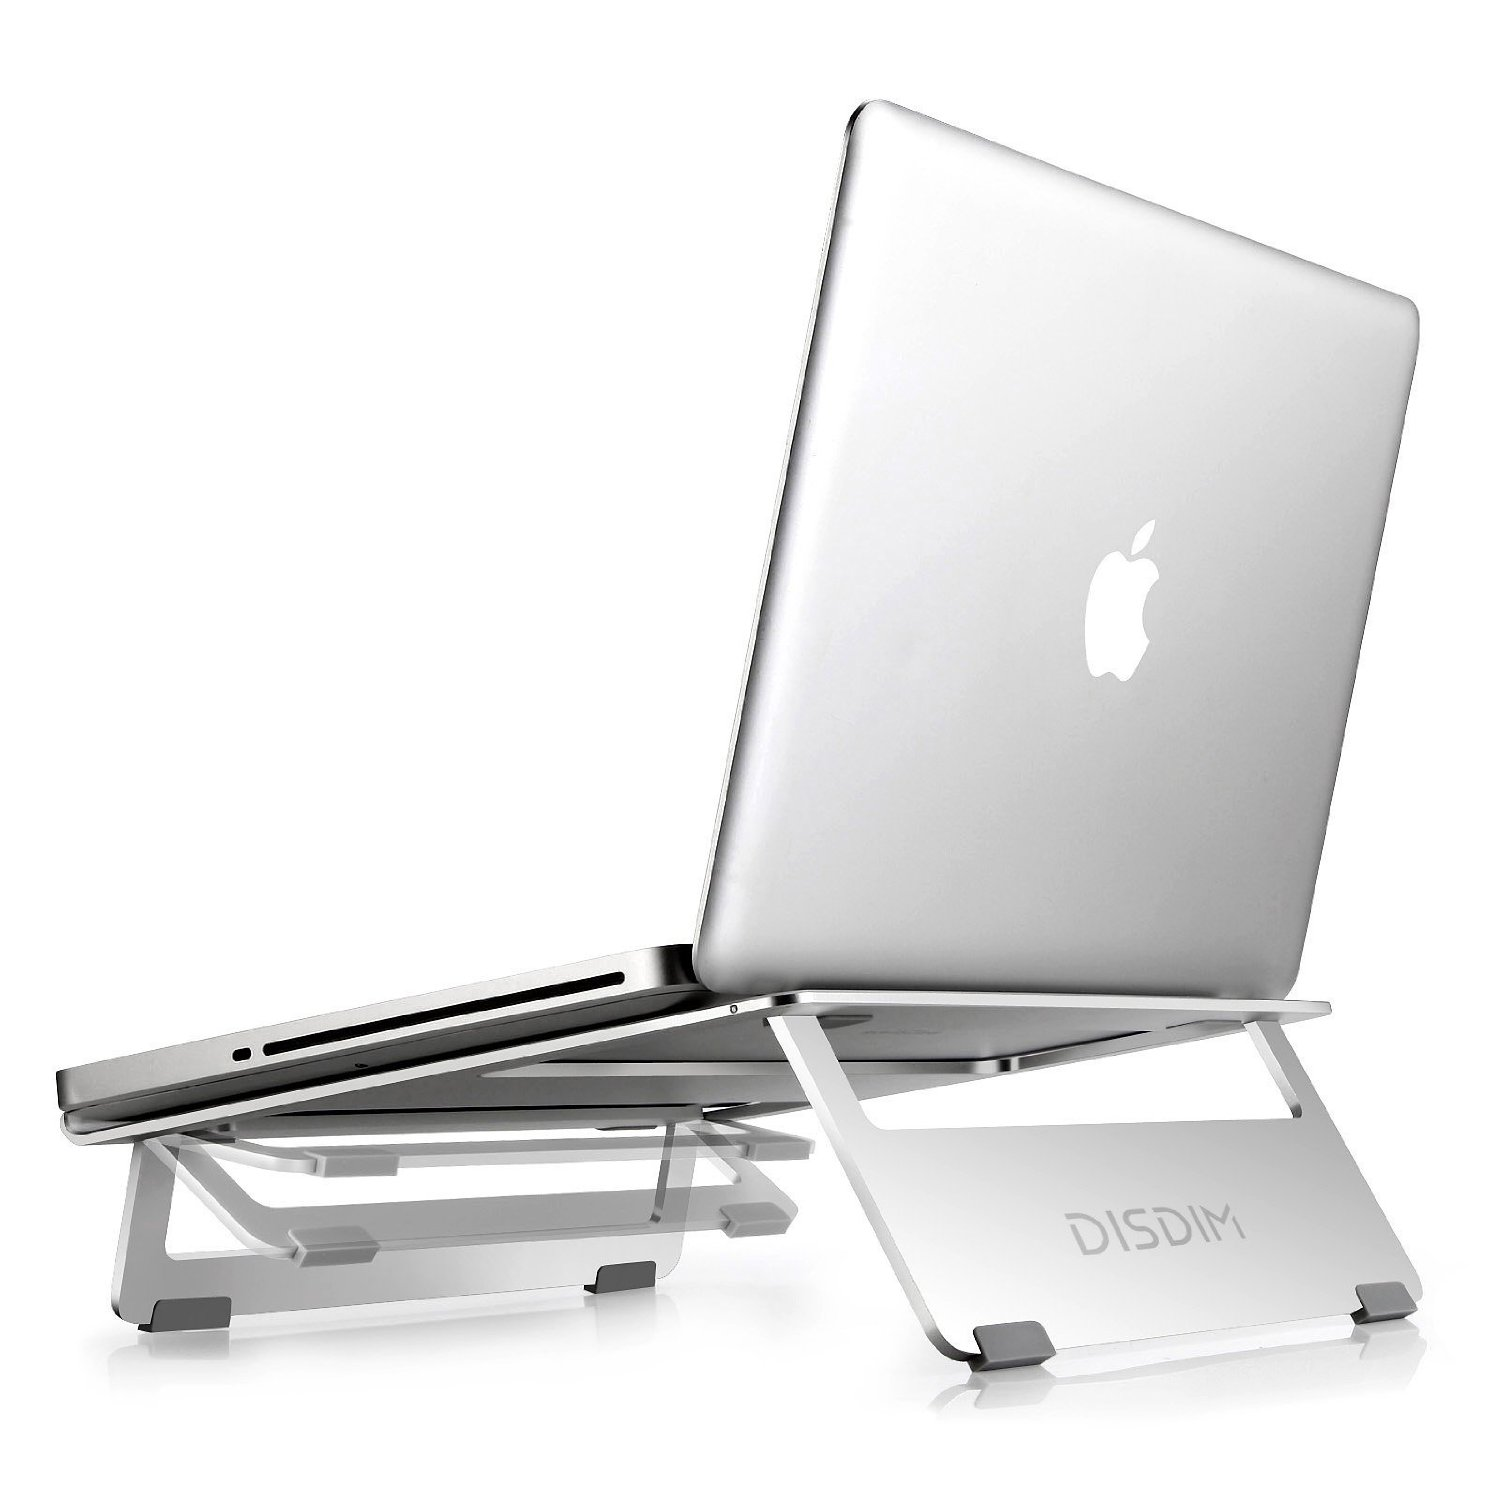 DISDIM Laptop Stand for Macbook,Aluminum Foldable Stand for Macbook / Macbook Pro / Macbook Air / iPad Pro / Notebook / PC Laptop,Height-adjustable Double vertical (Silver)